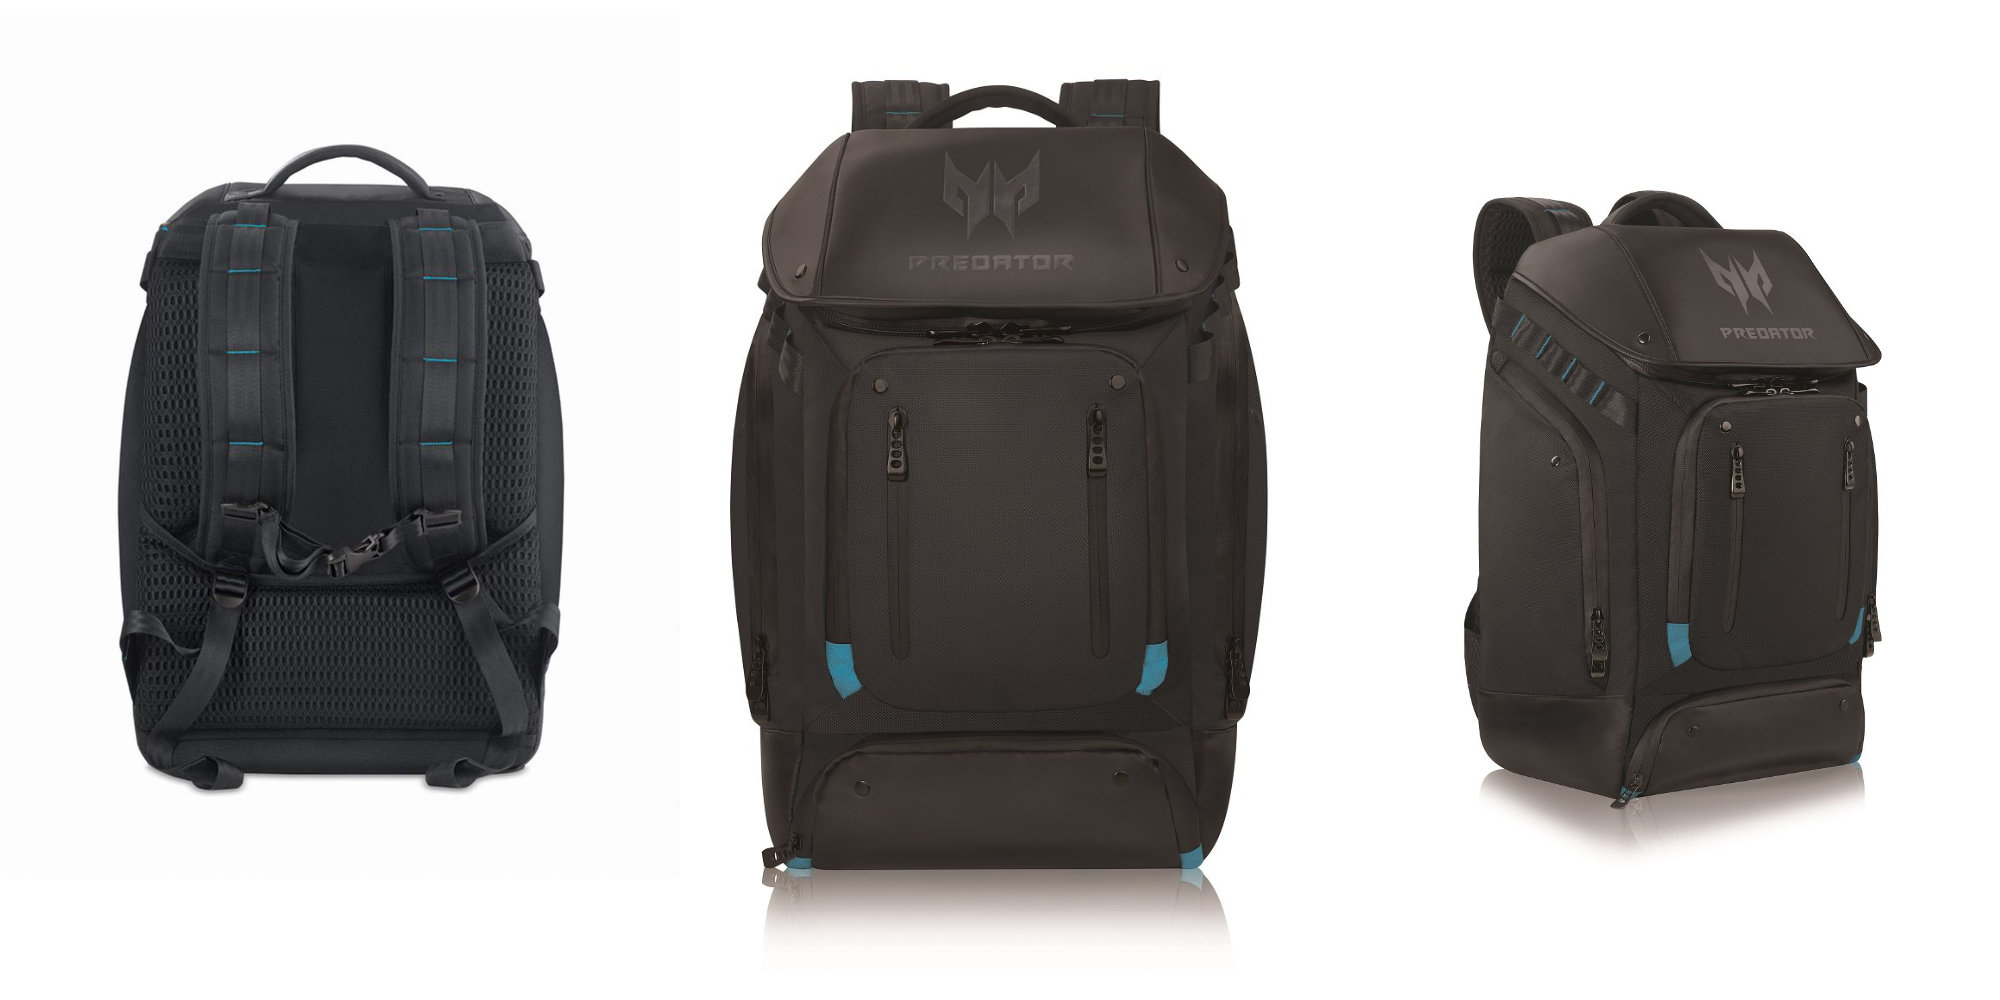 Acer's Predator Utility Backpack sports slick styling and fits every MacBook size: $110 (Reg. $140)